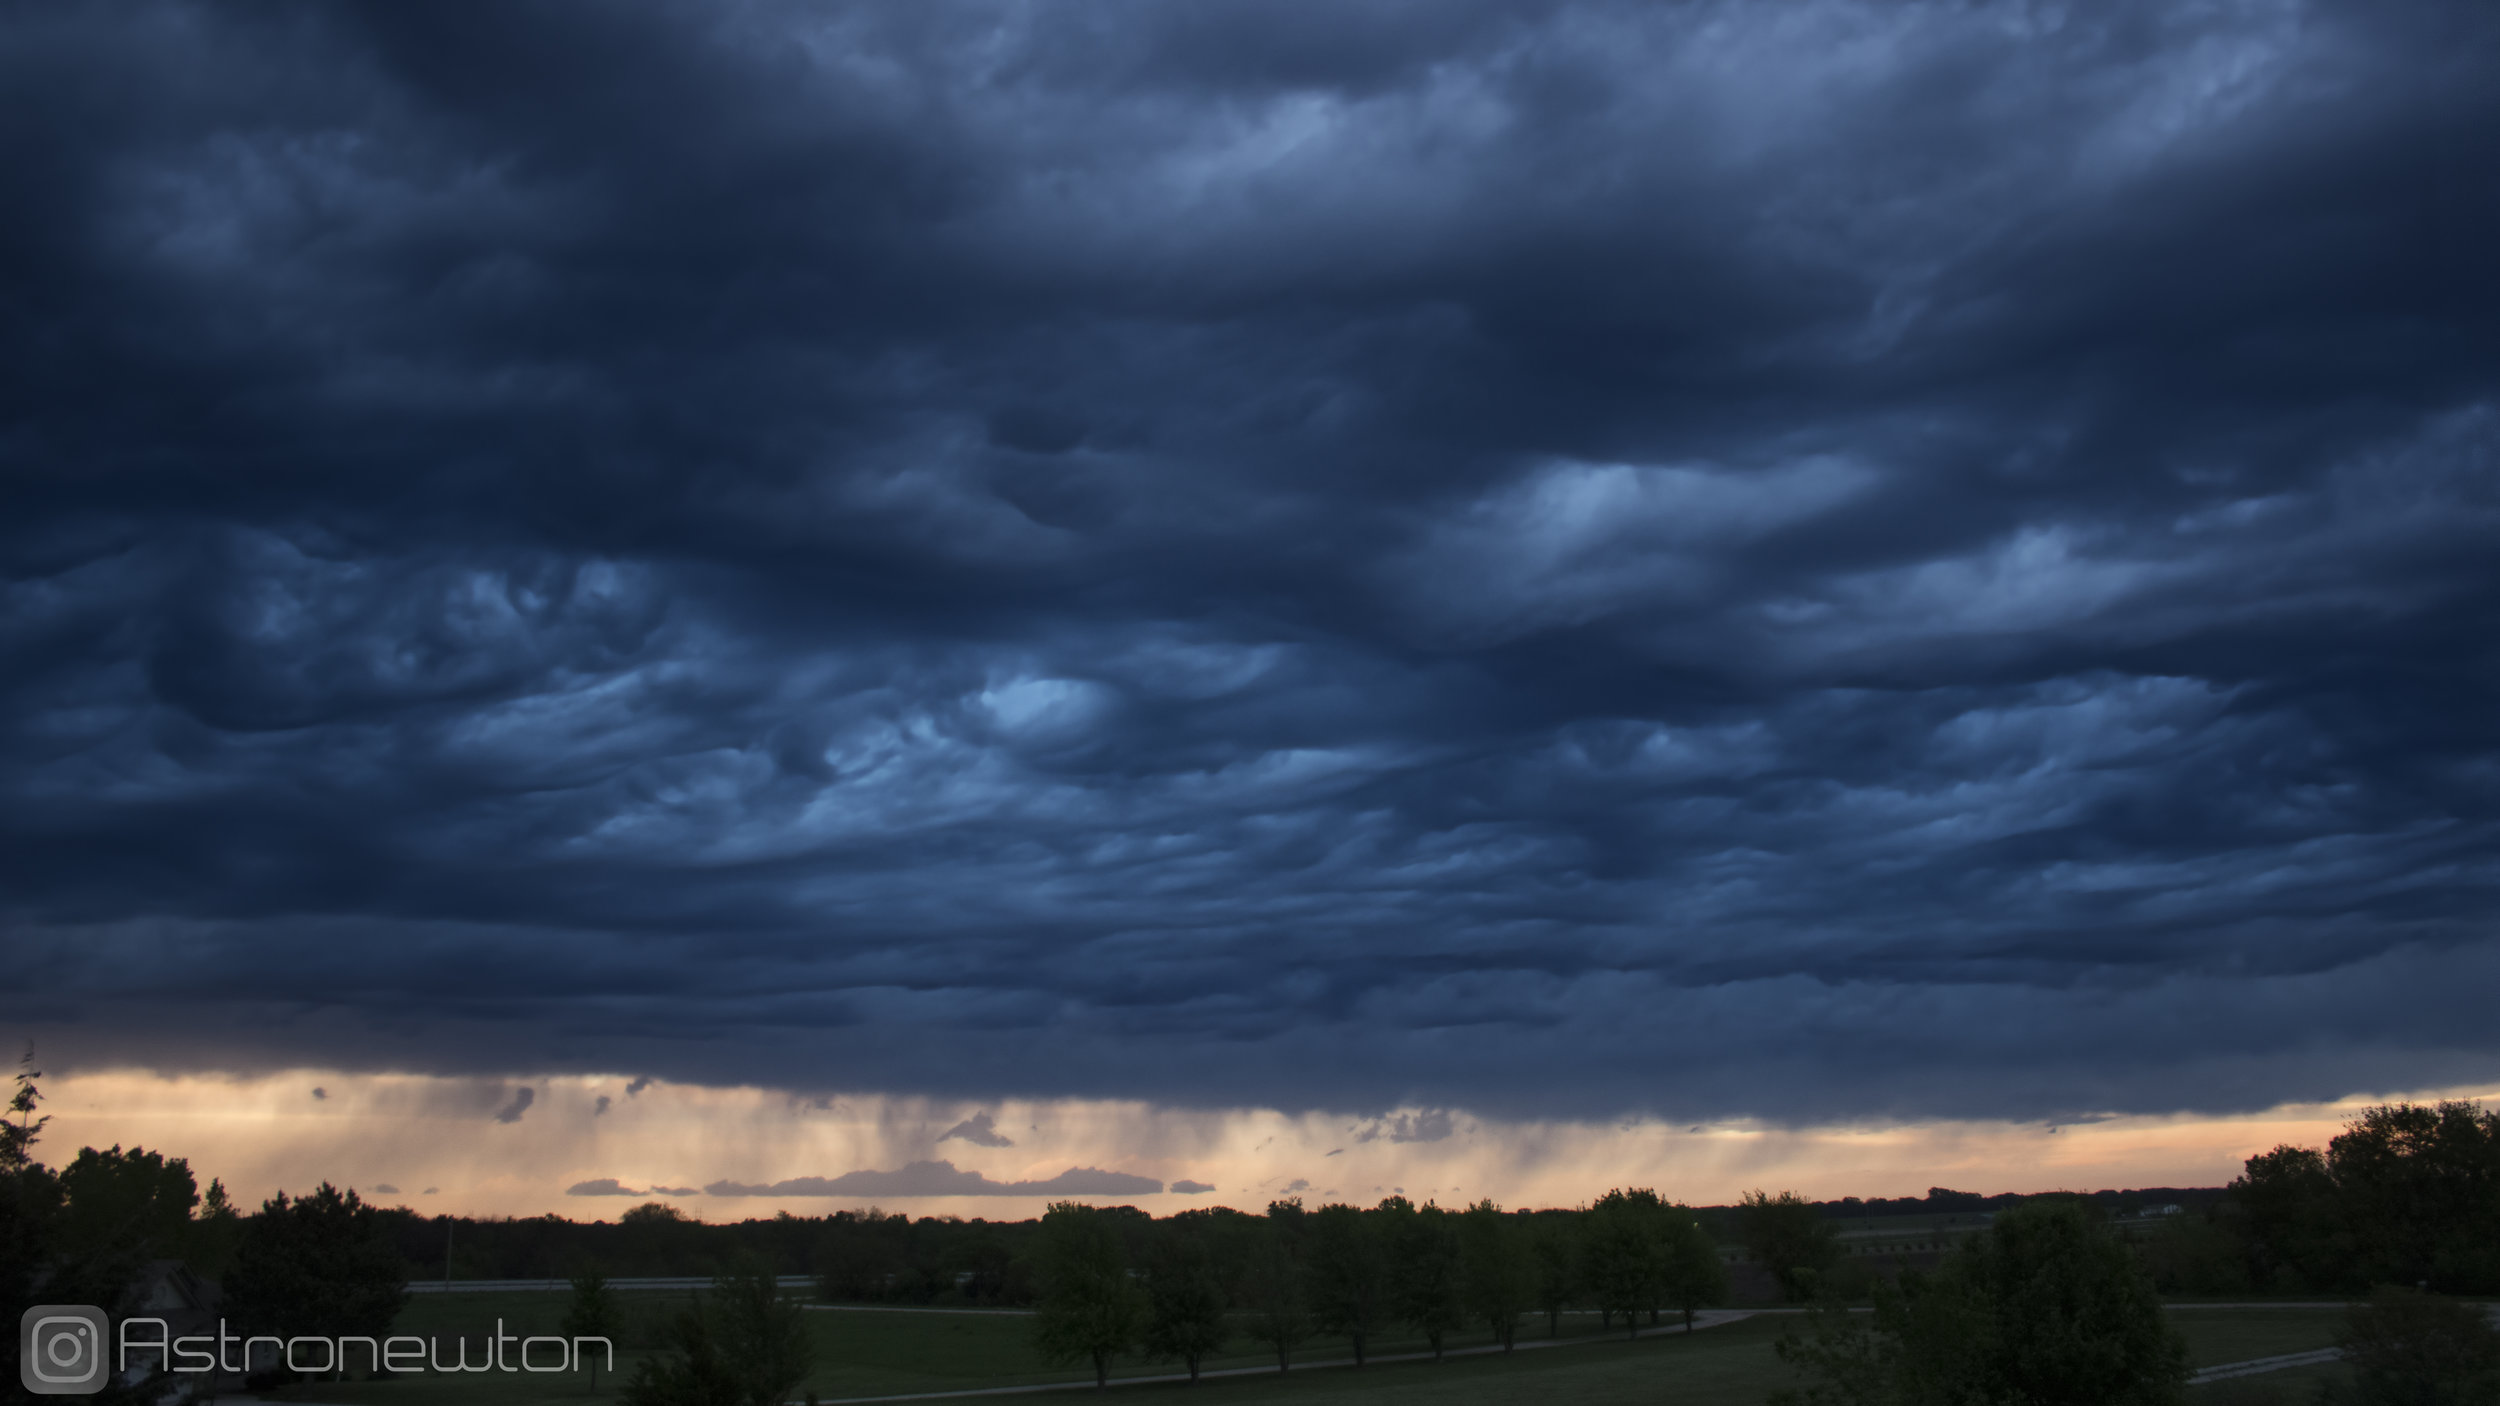 Asperitas Clouds (I am not absolutely certain if I correctly identified these) descending like a blanket. May 5, 2019, Canon T3i + 18mm Lens